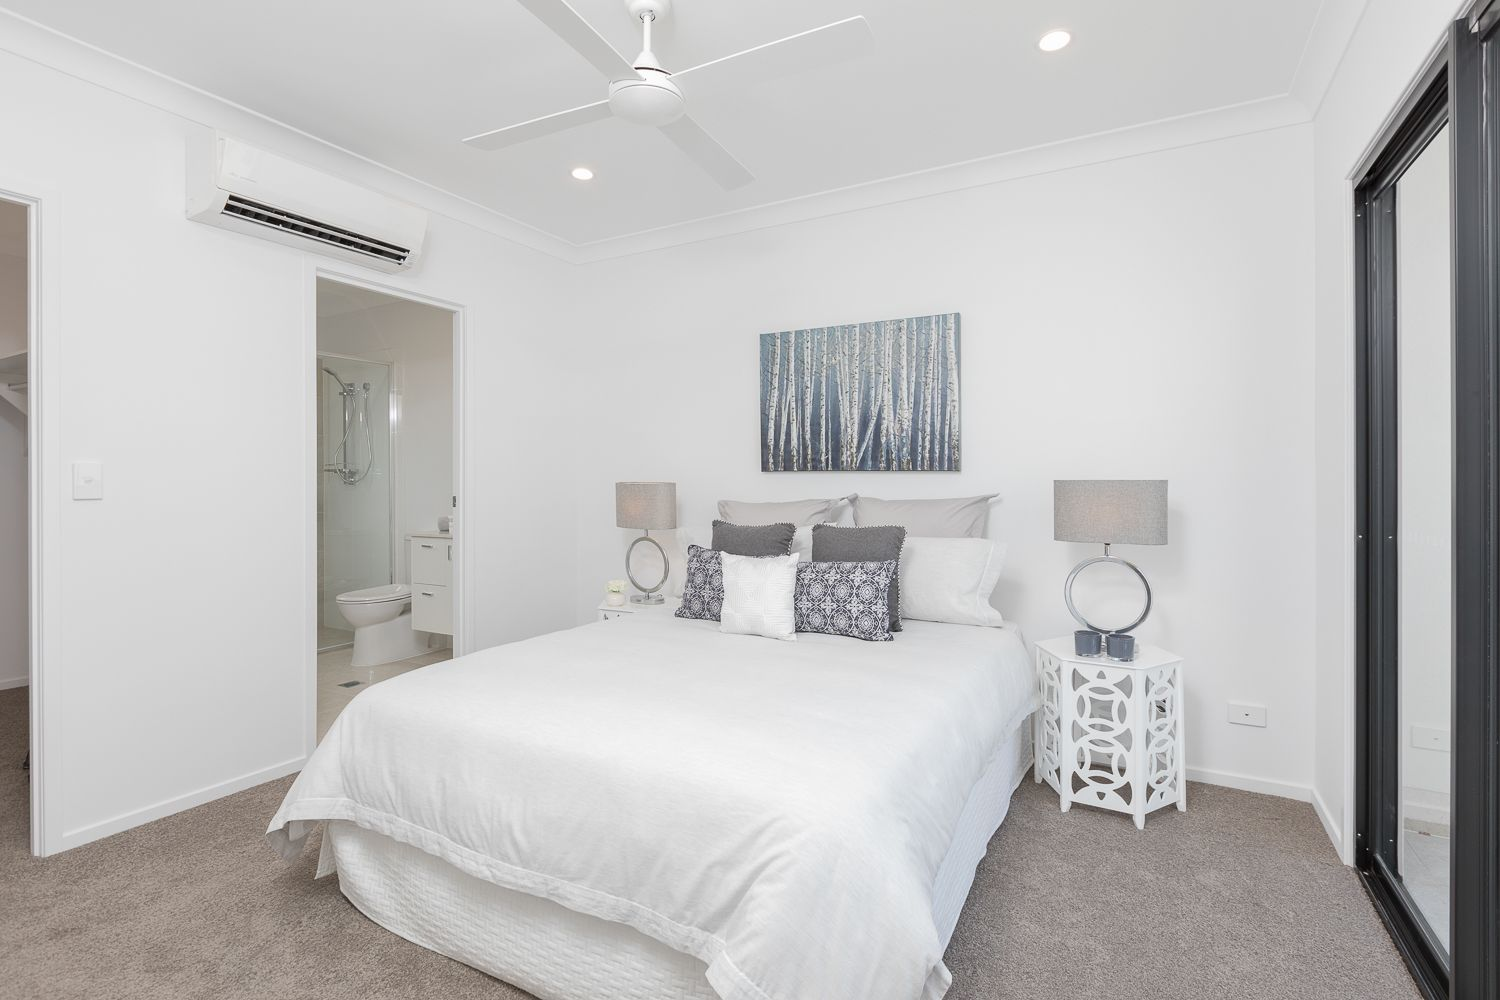 5/15 Sambar Close Chermside West 4032